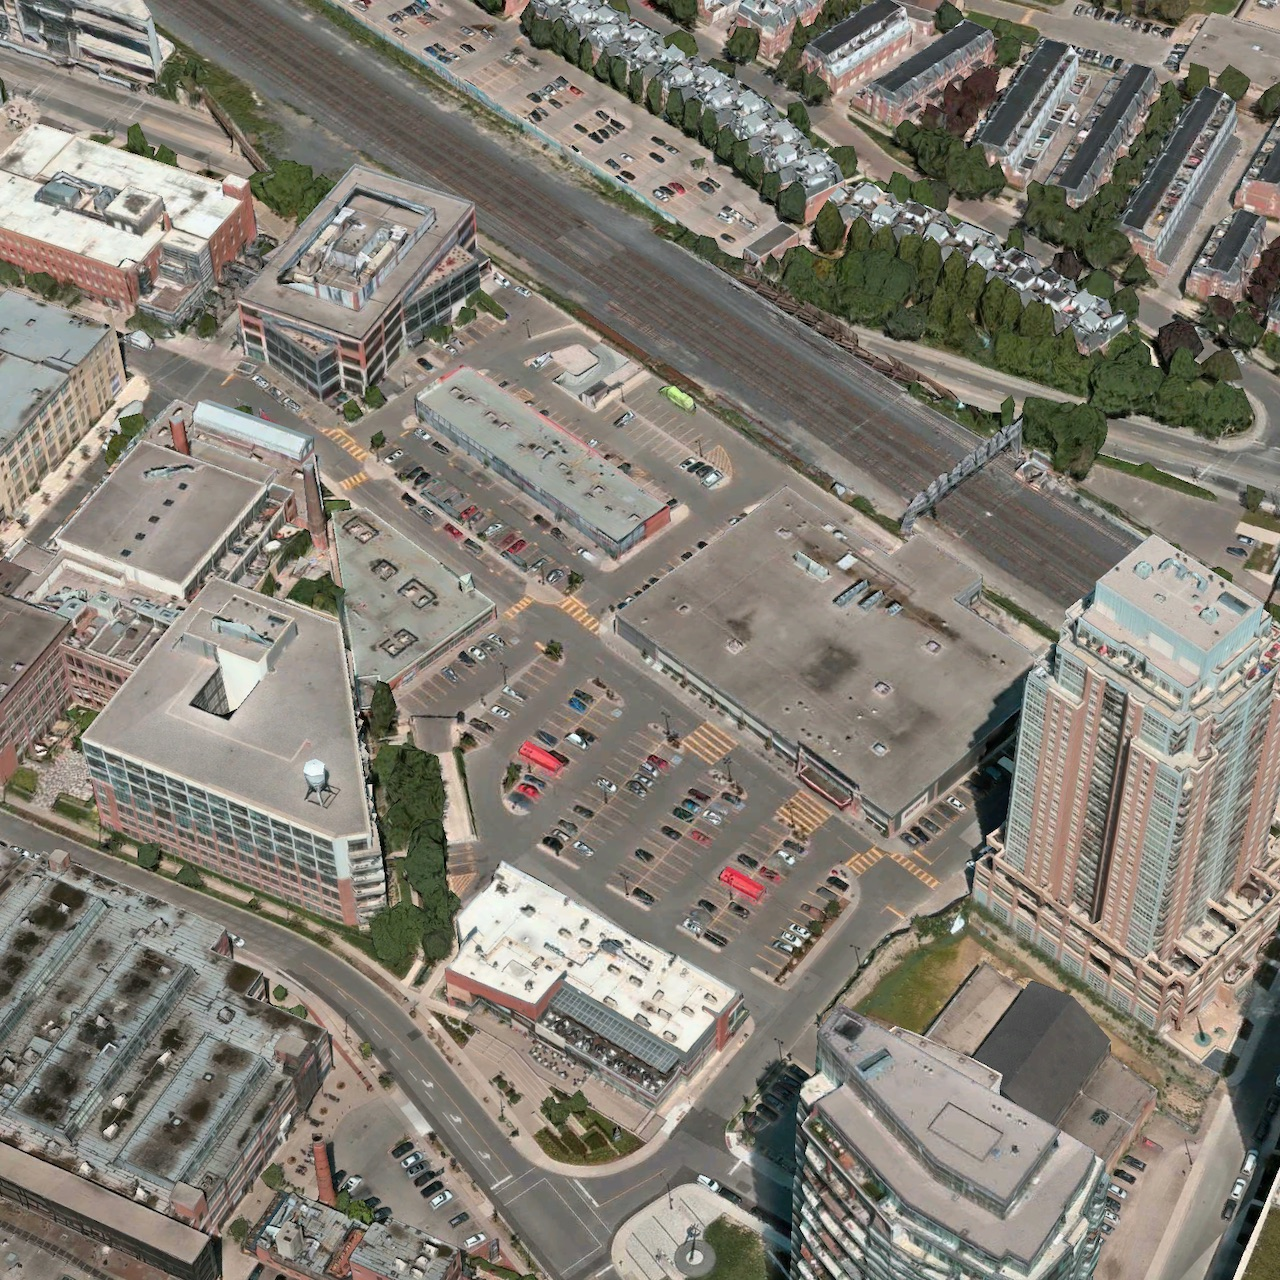 Looking across the Shops at King Liberty plaza area in Toronto, image via Apple Maps